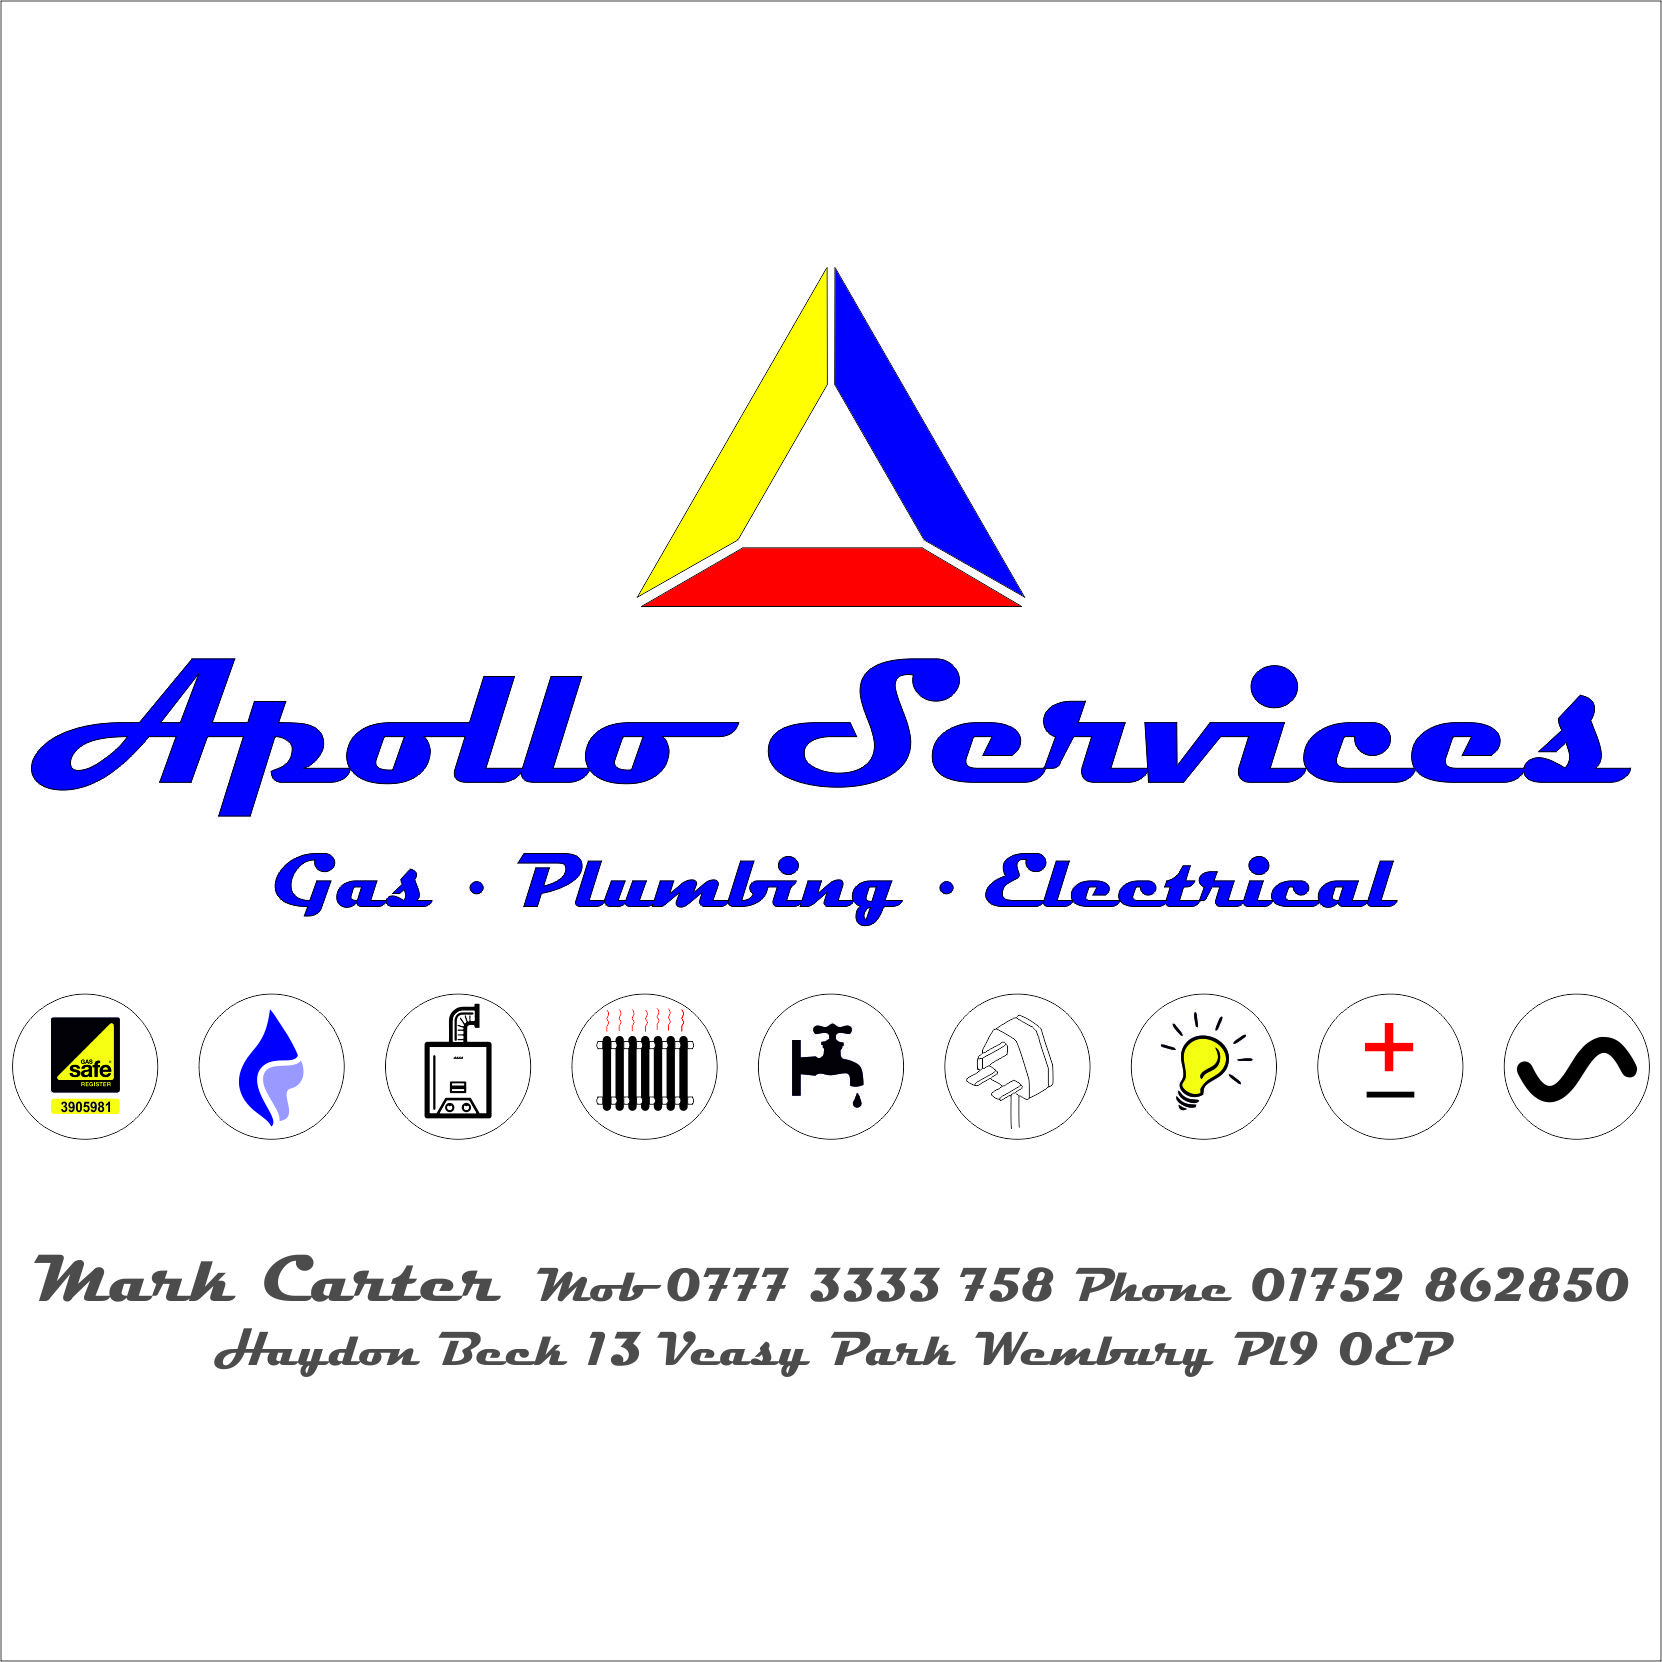 Apollo Services